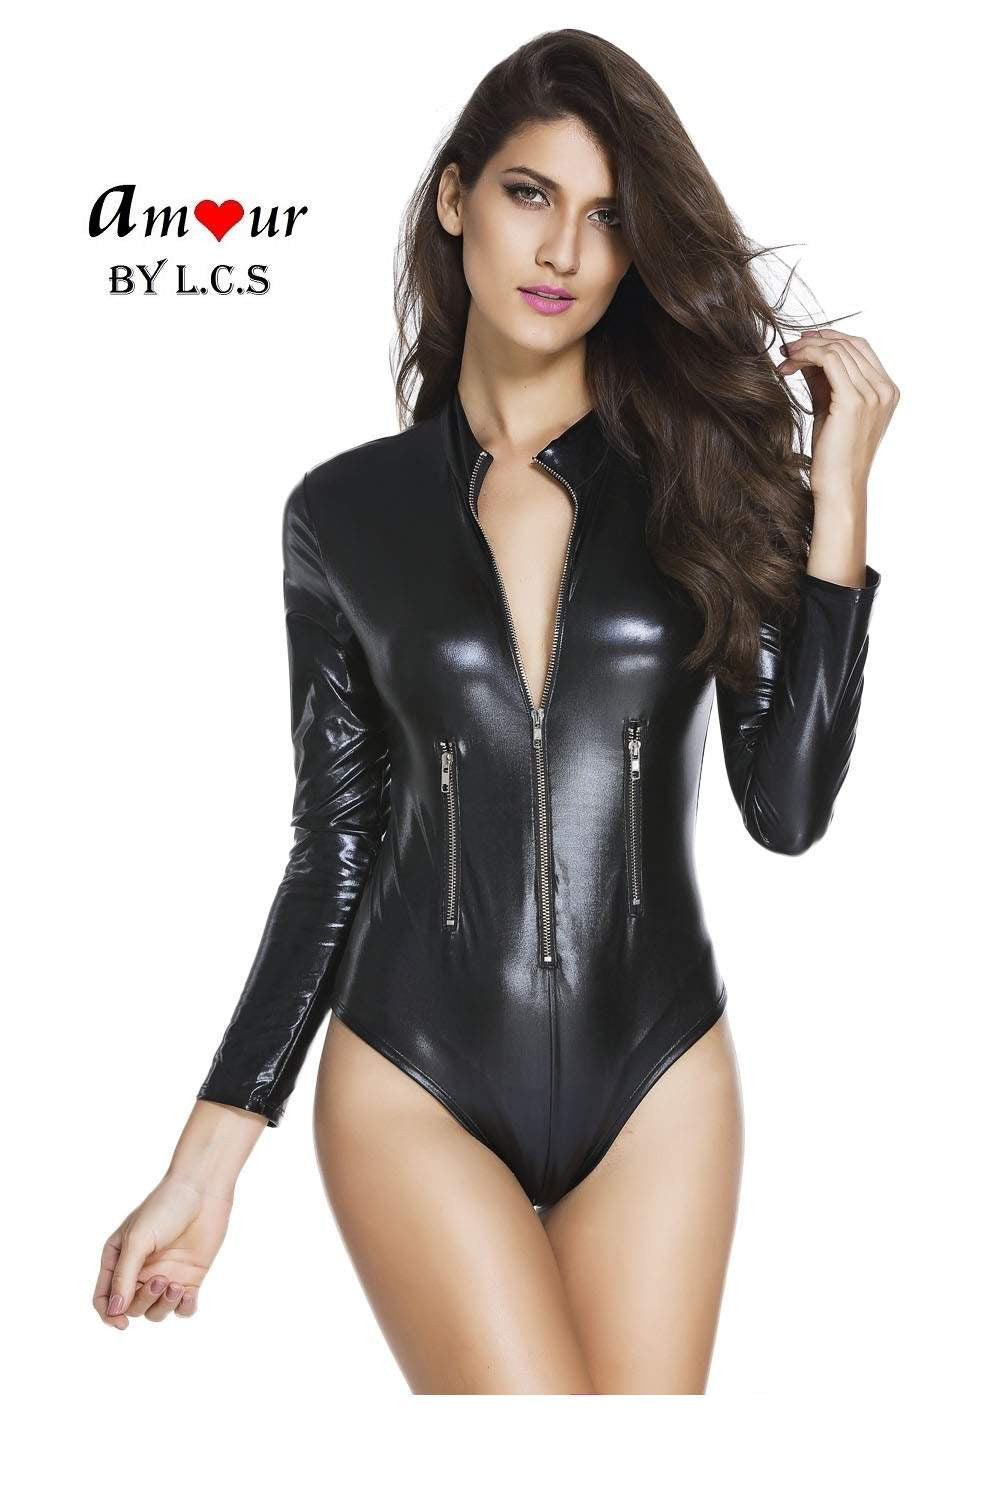 [sexy leather bodysuit] - AMOUR Lingerie